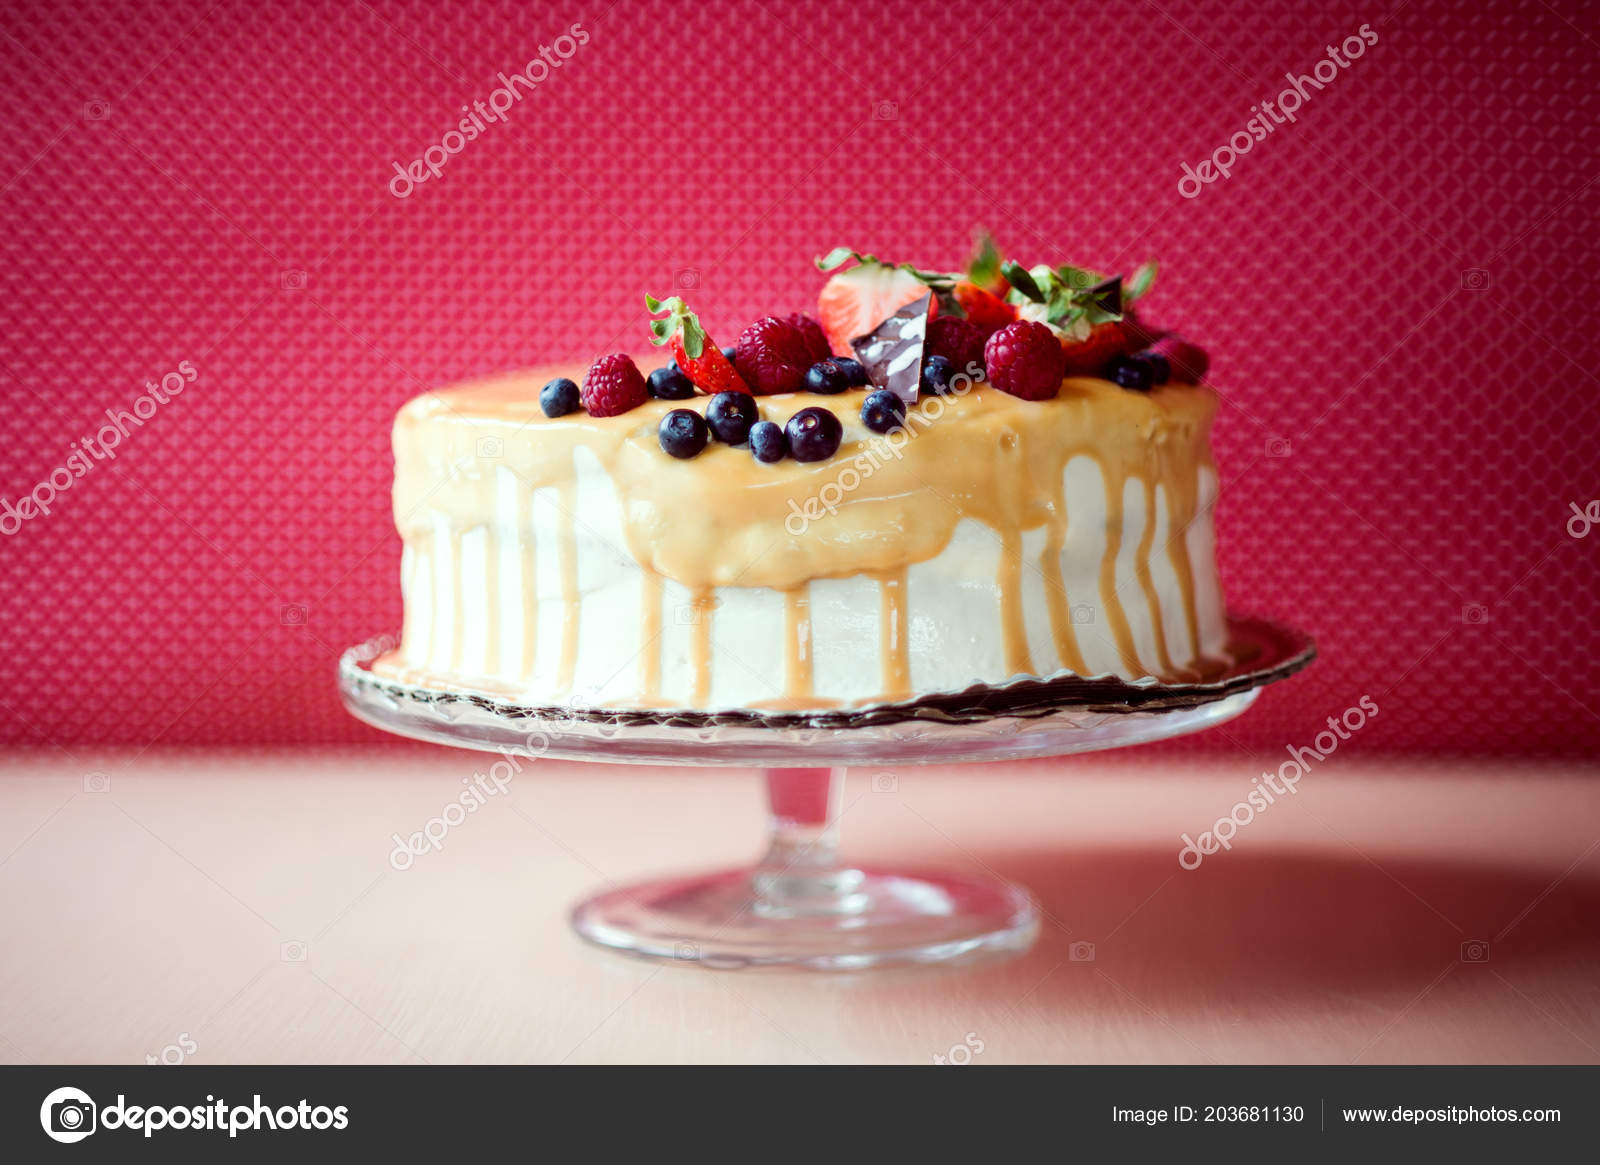 A Birthday Cake On Glass Stand The Table Fruit Top Red Background Photo By Halfpoint